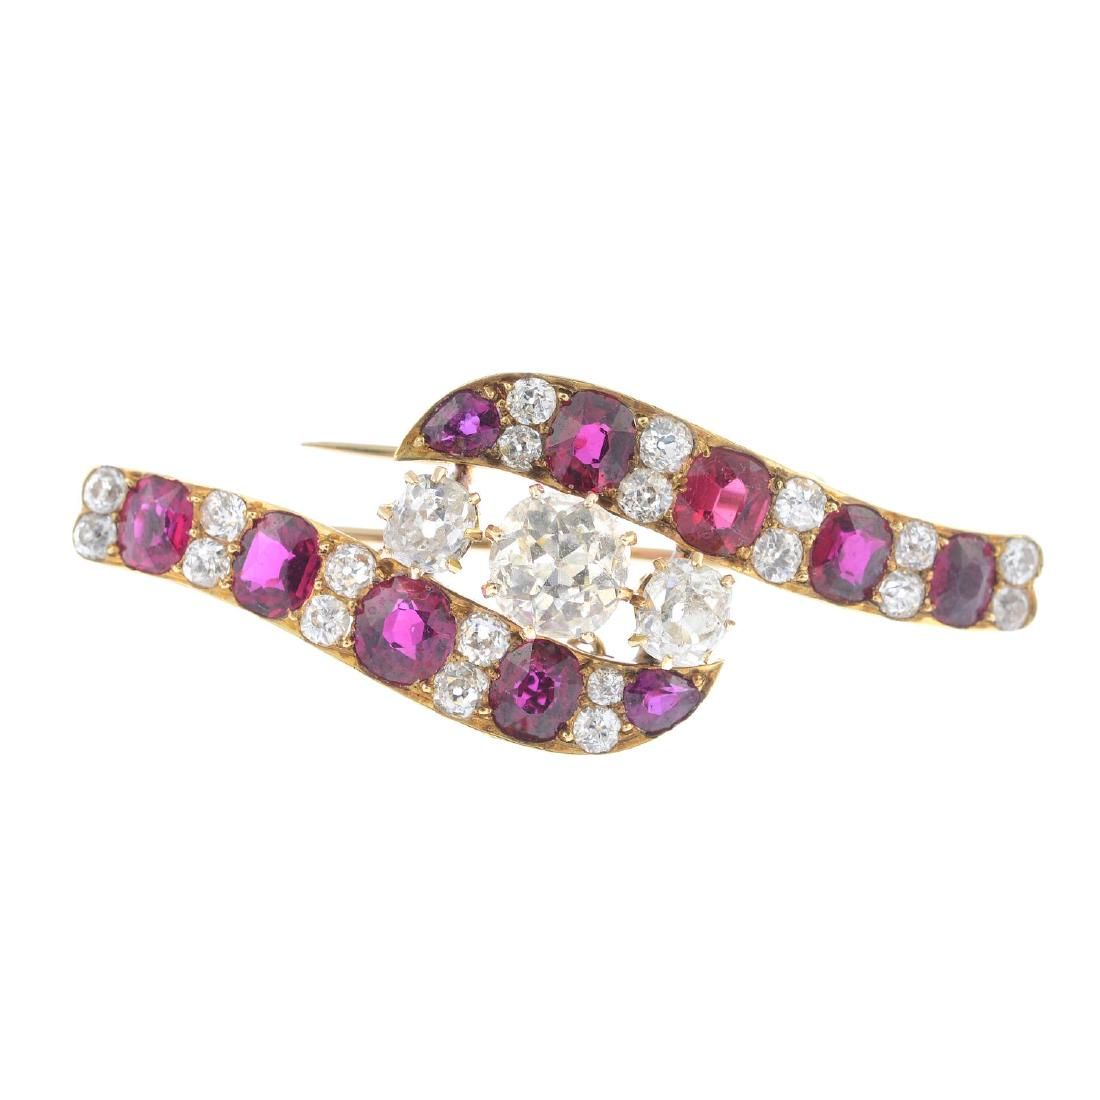 An early 20th century gold diamond and ruby brooch. The